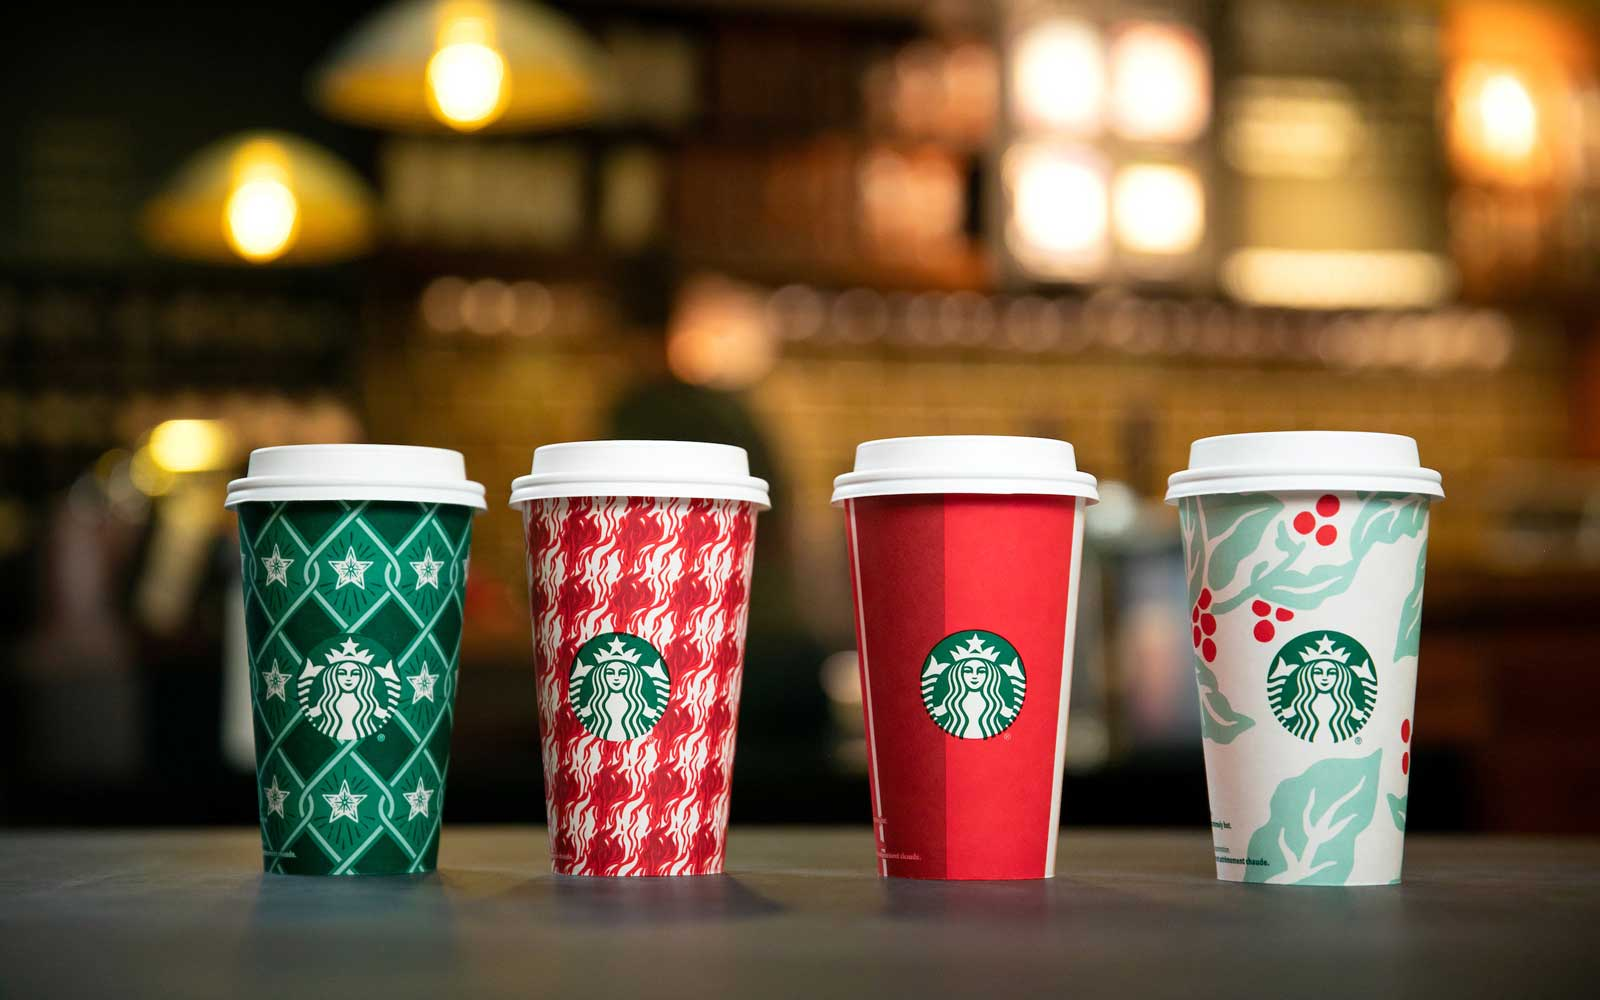 Starbucks Has Concocted a New Holiday Beverage